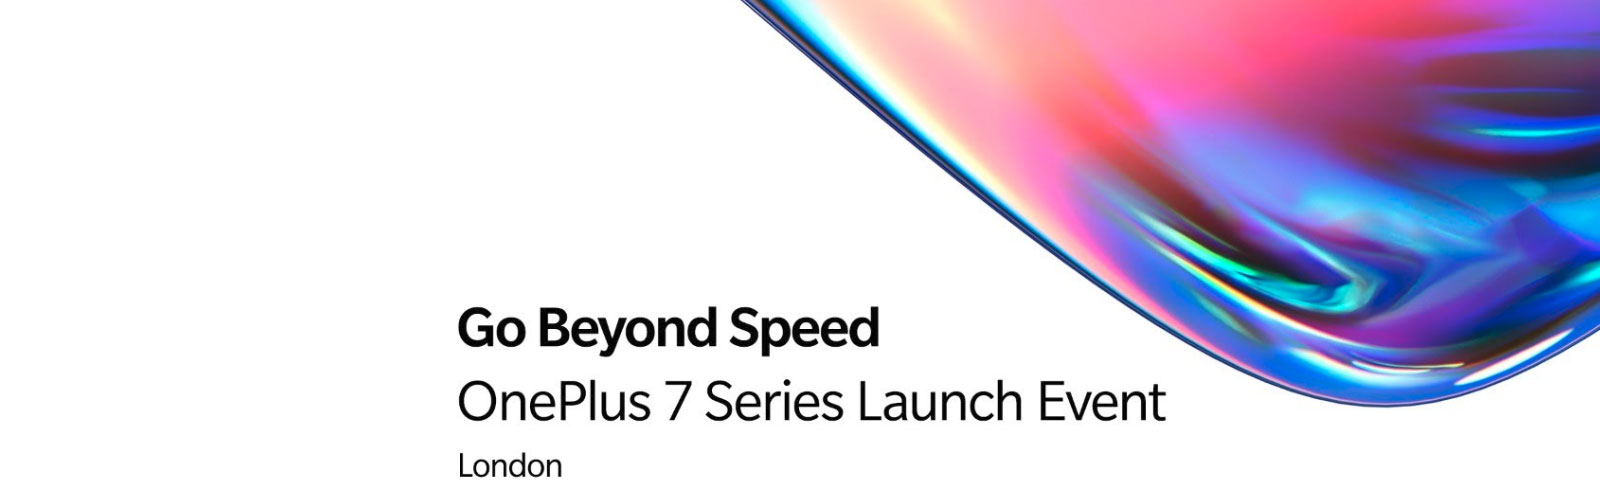 OnePlus 7 and OnePlus 7 Pro launch event live stream